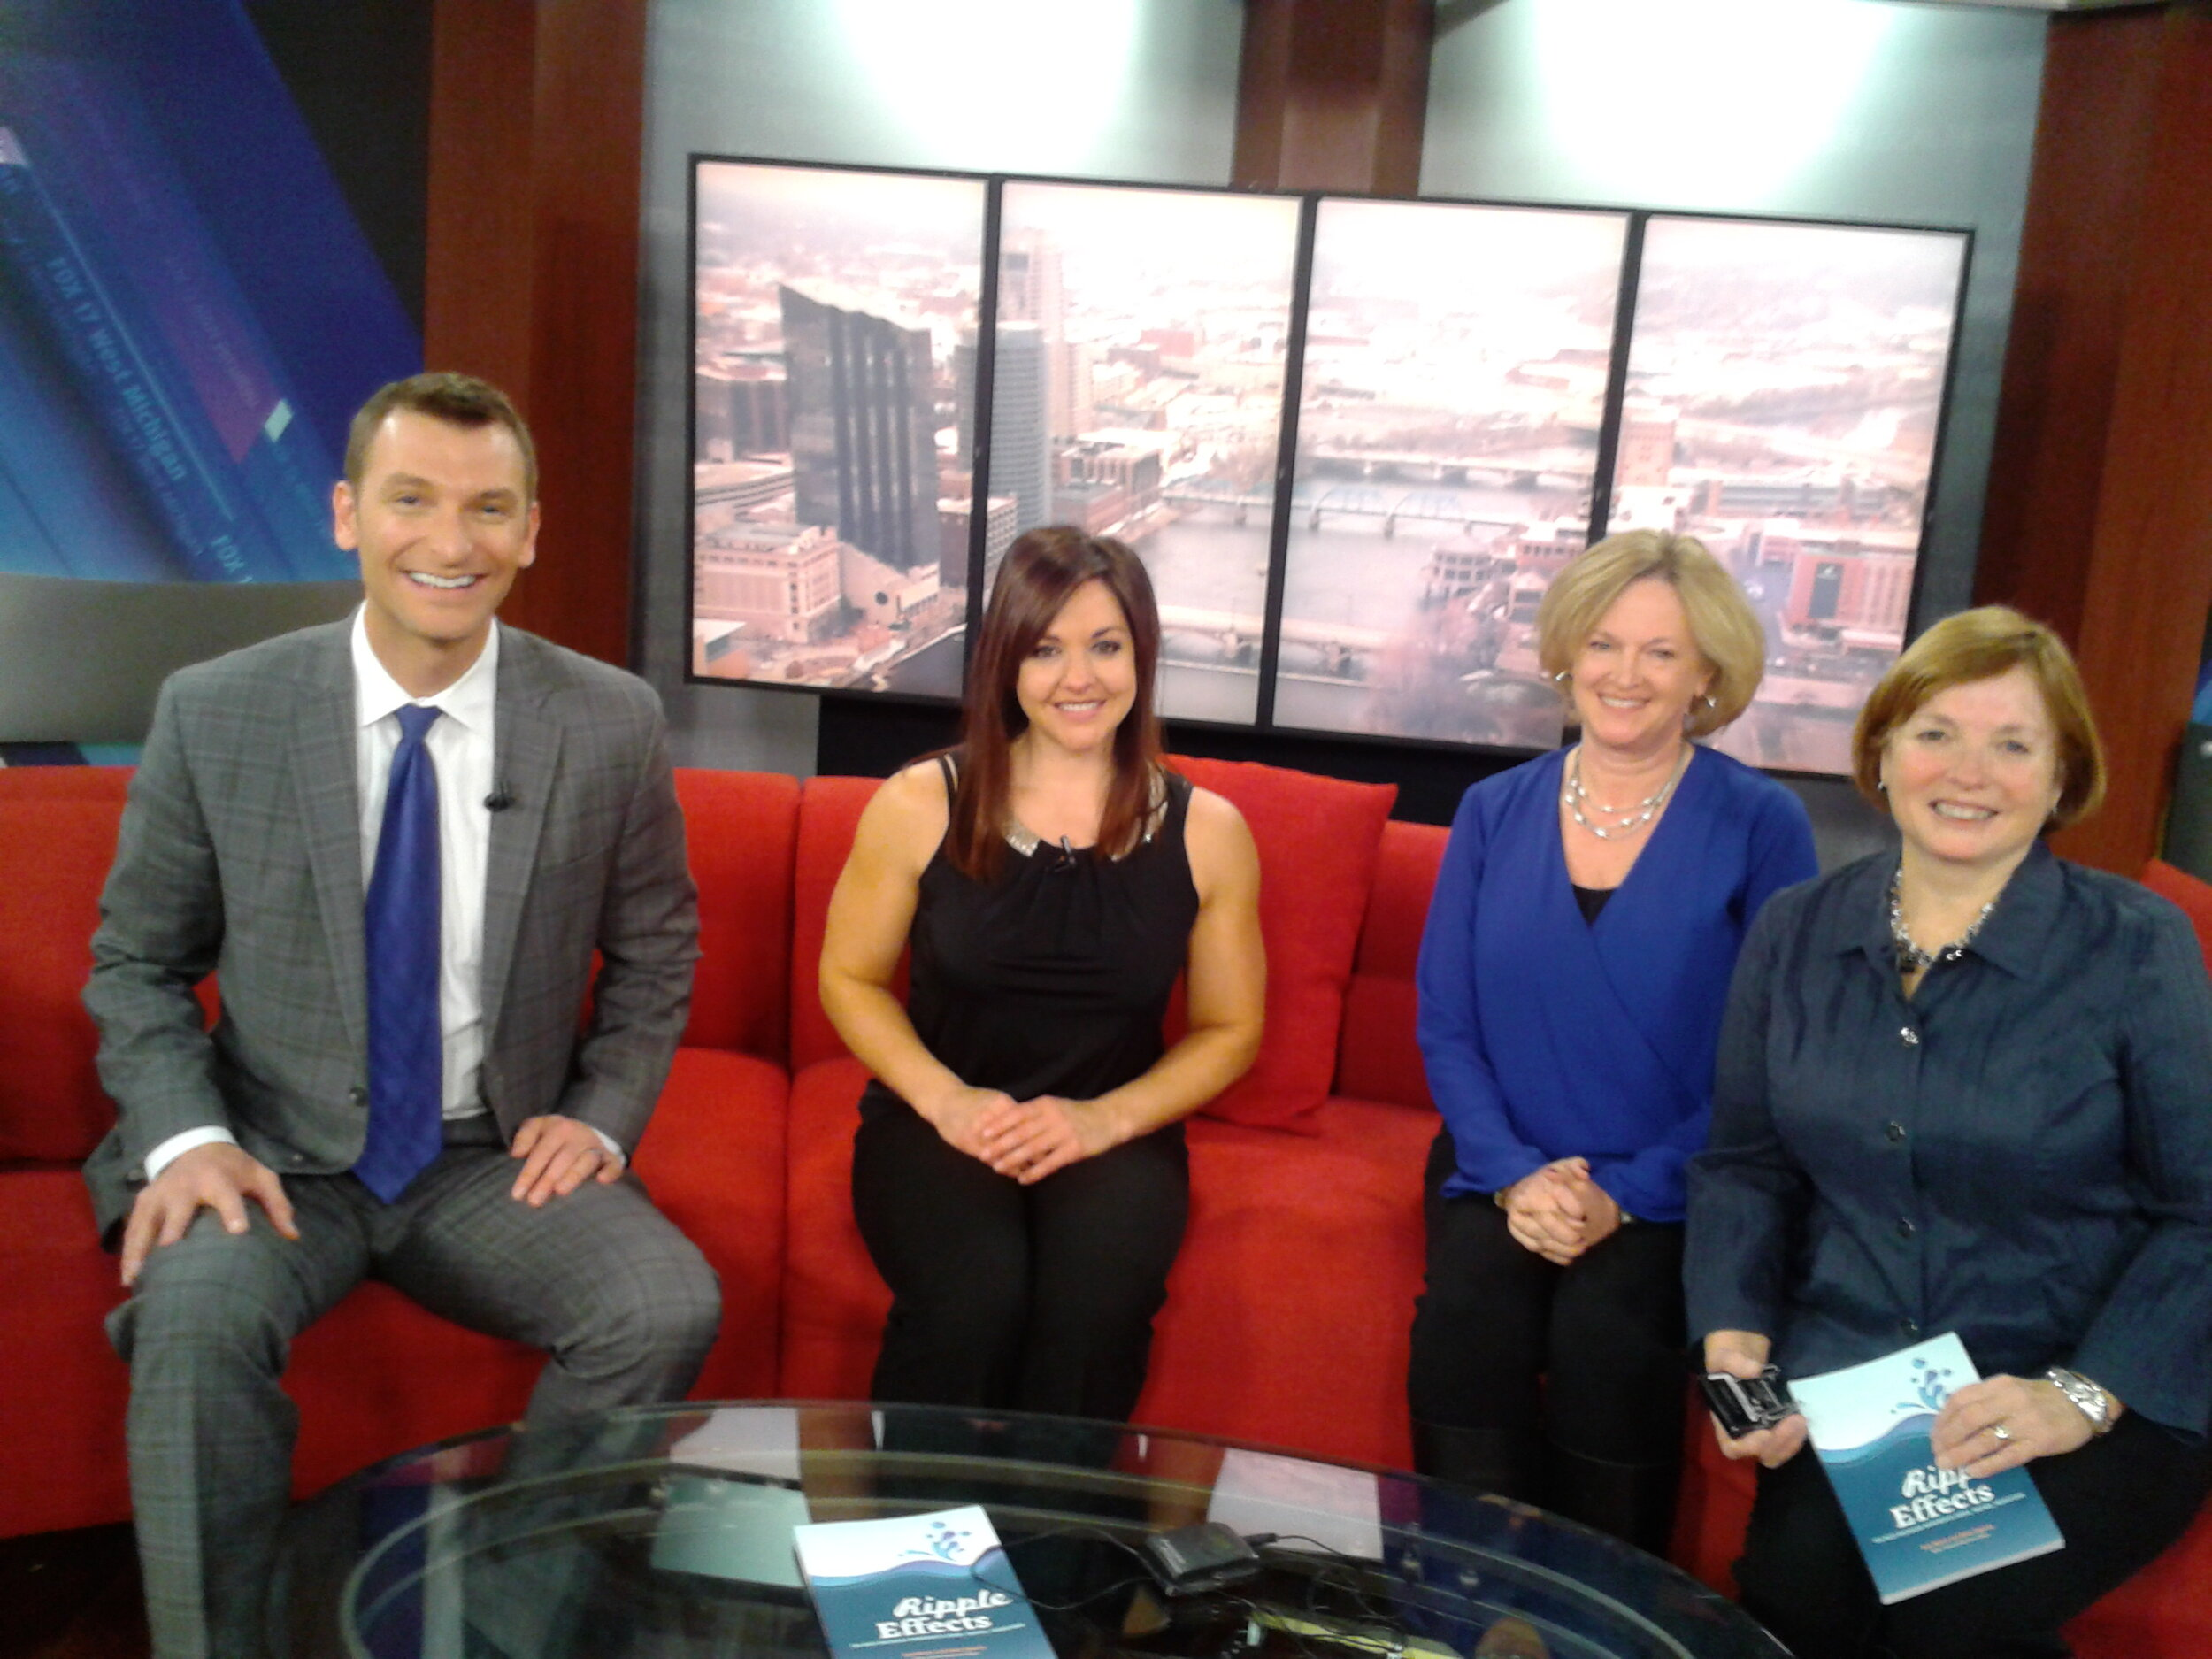 Here I am on Fox-17 News in 2014 with colleague Betty Epperly, promoting  Ripple Effects , a book on local nonprofits that we co-authored.